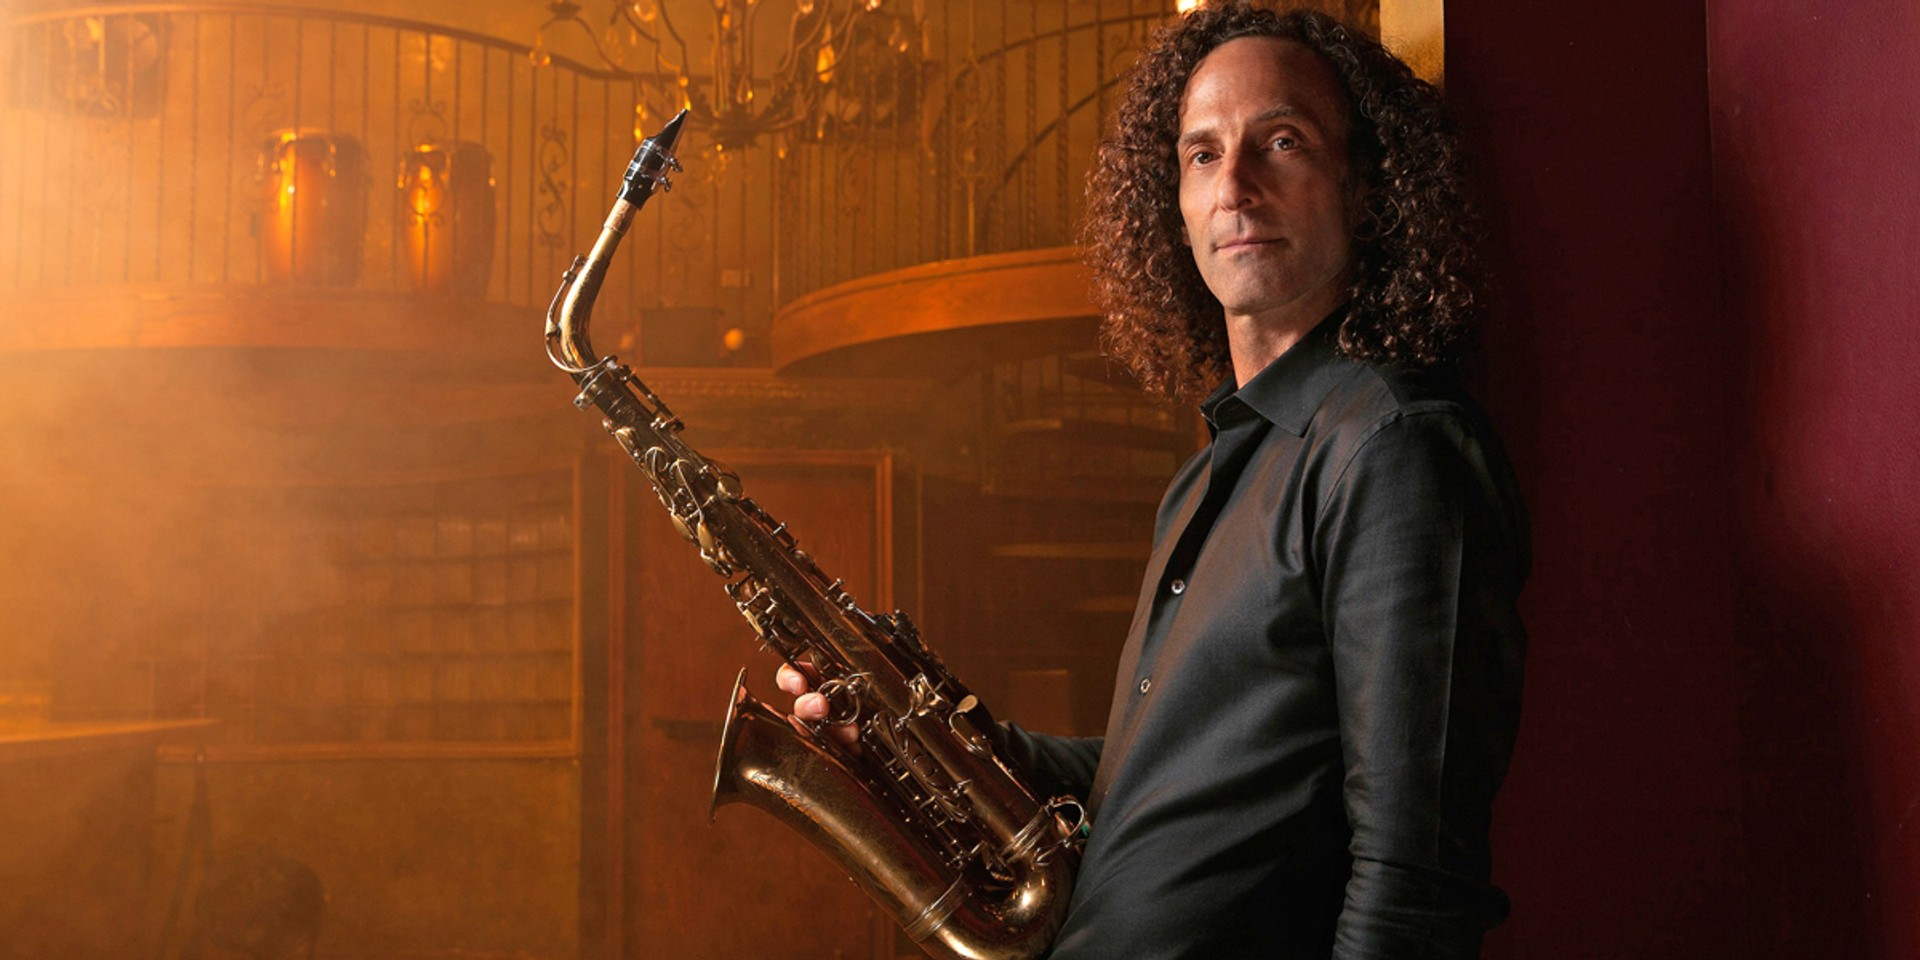 Kenny G to perform in Singapore in February